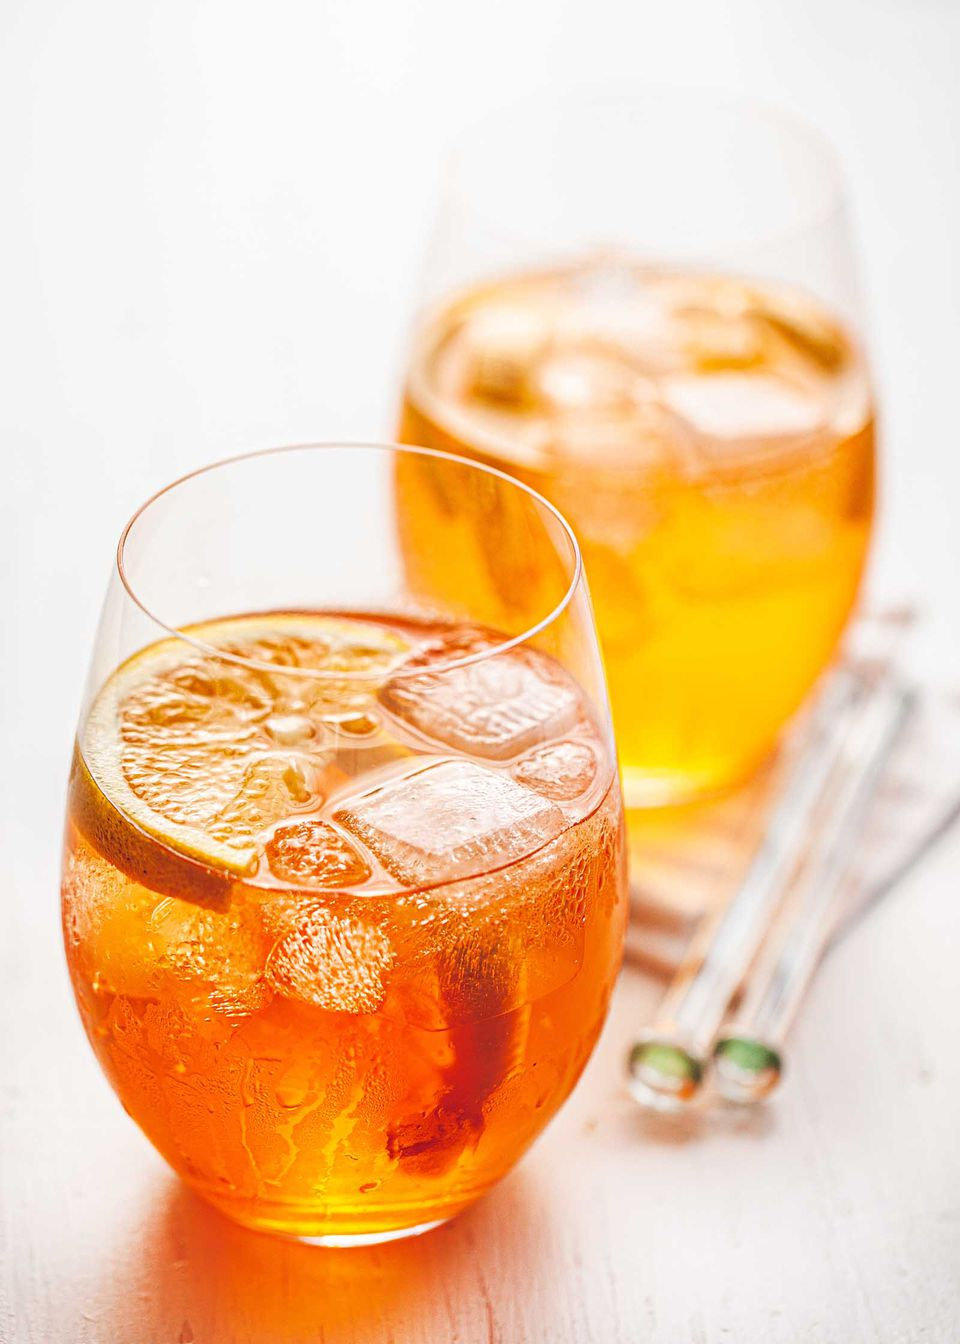 Aperol spritz in a wine glass with ice and orange slices. A second glass is behind it with stir sticks and cocktail napkins.